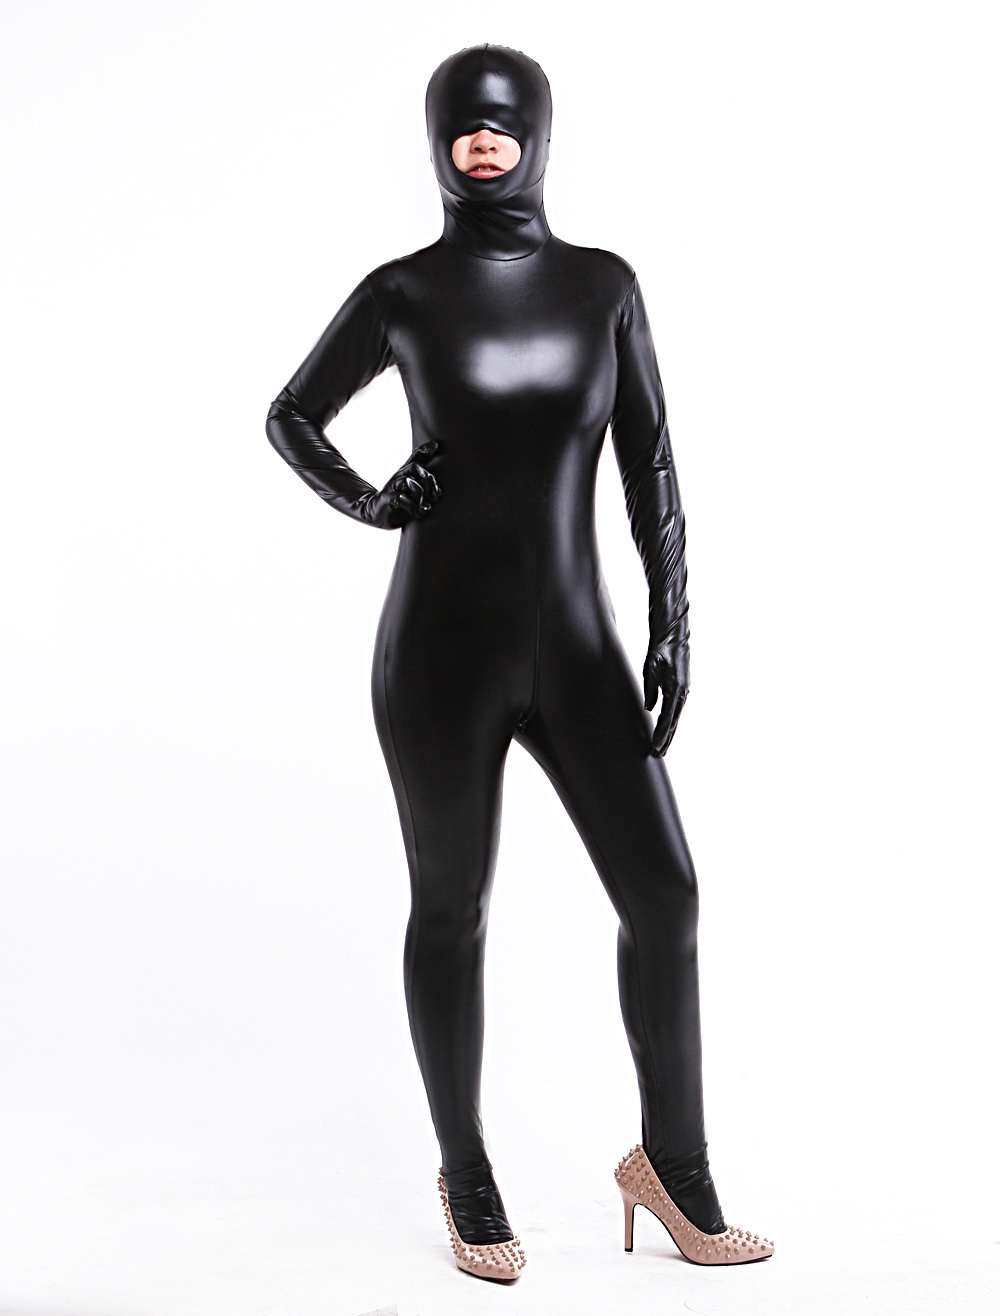 Halloween Crotchless Sexy Shiny Metallic Zentai with Mouth Opened Halloween